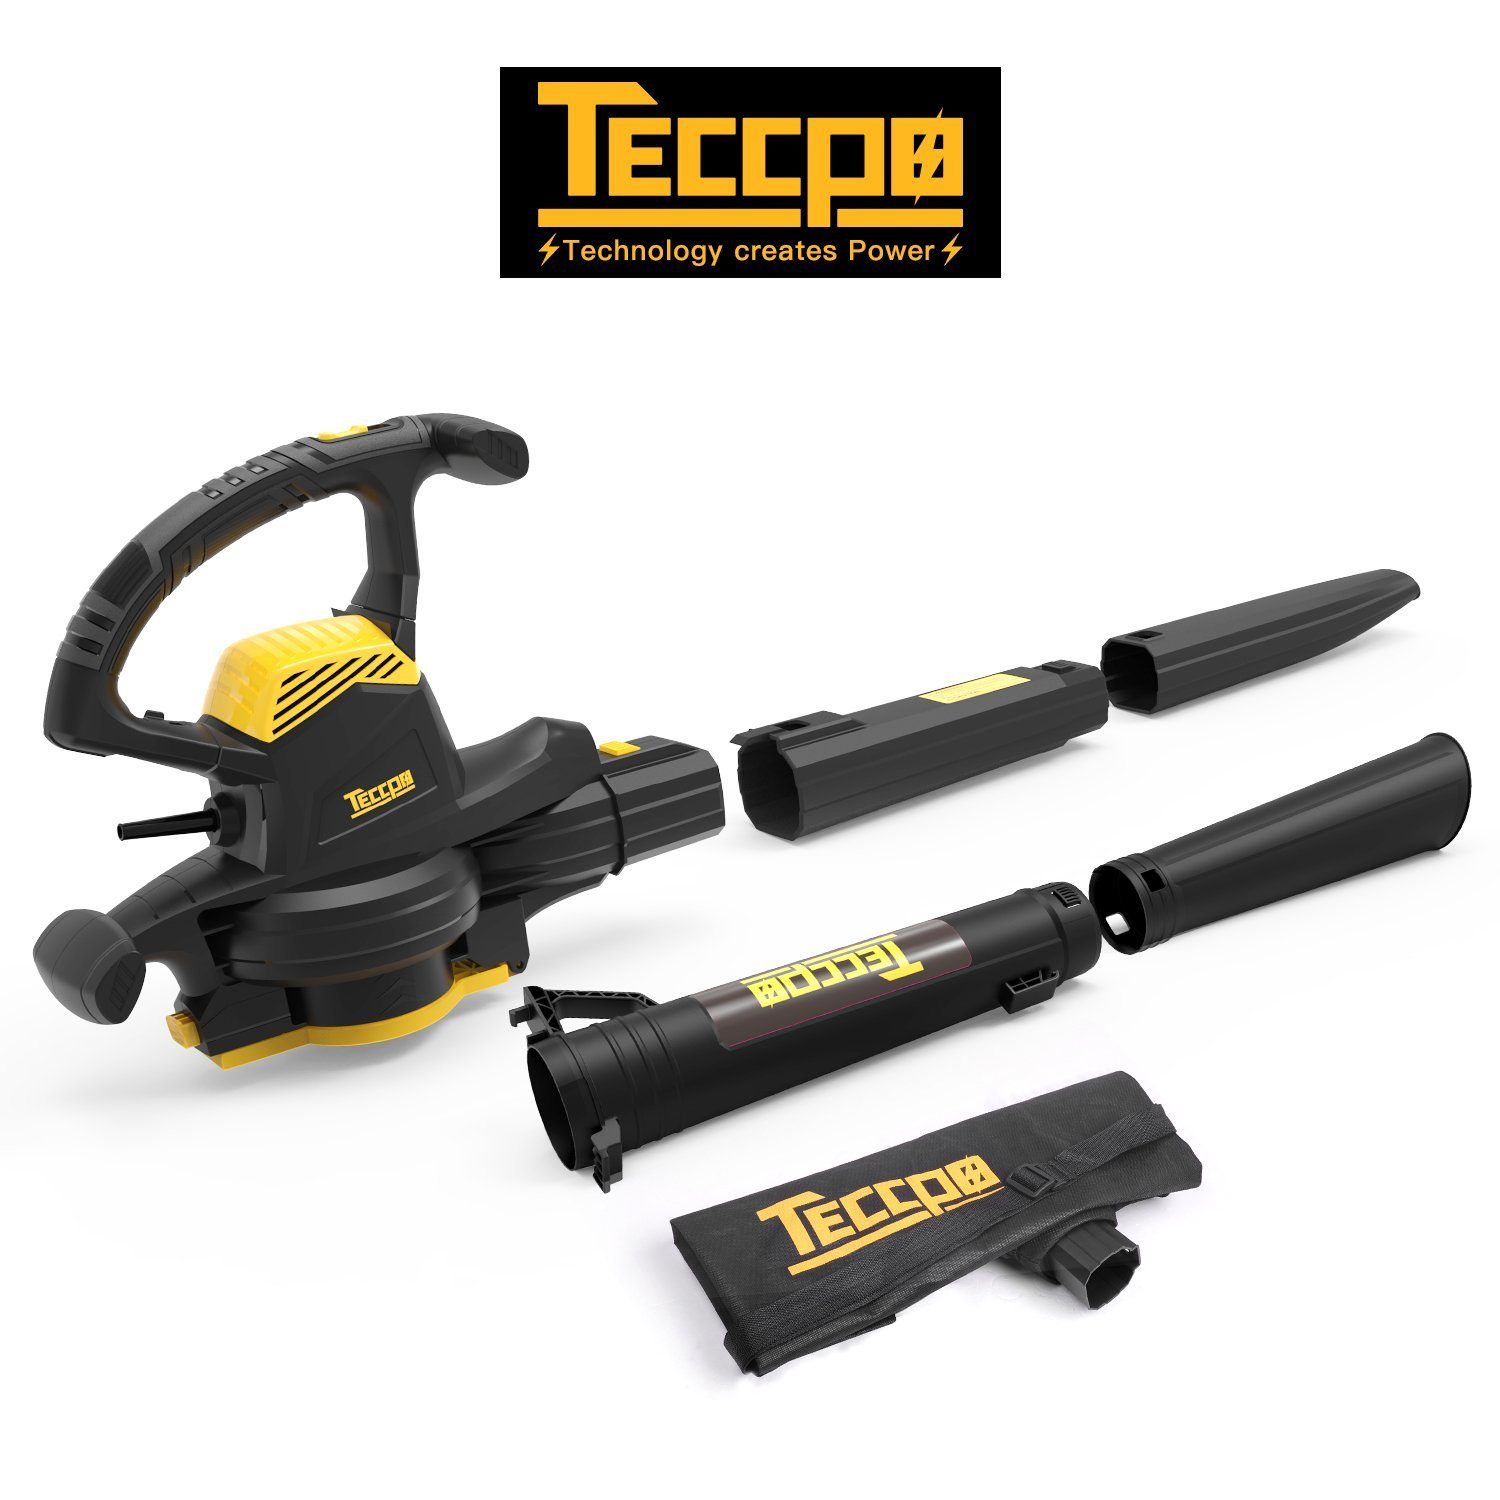 Leaf Blower Vacuum, TECCPO TABV01G 12-Amp 250MPH 410CFM 3 in 1 corded electric Two-Speed Sweeper/Vac/Mulcher, Plastic Impeller Metal Blade, Ideal for Lawn and Garden by TECCPO (Image #8)